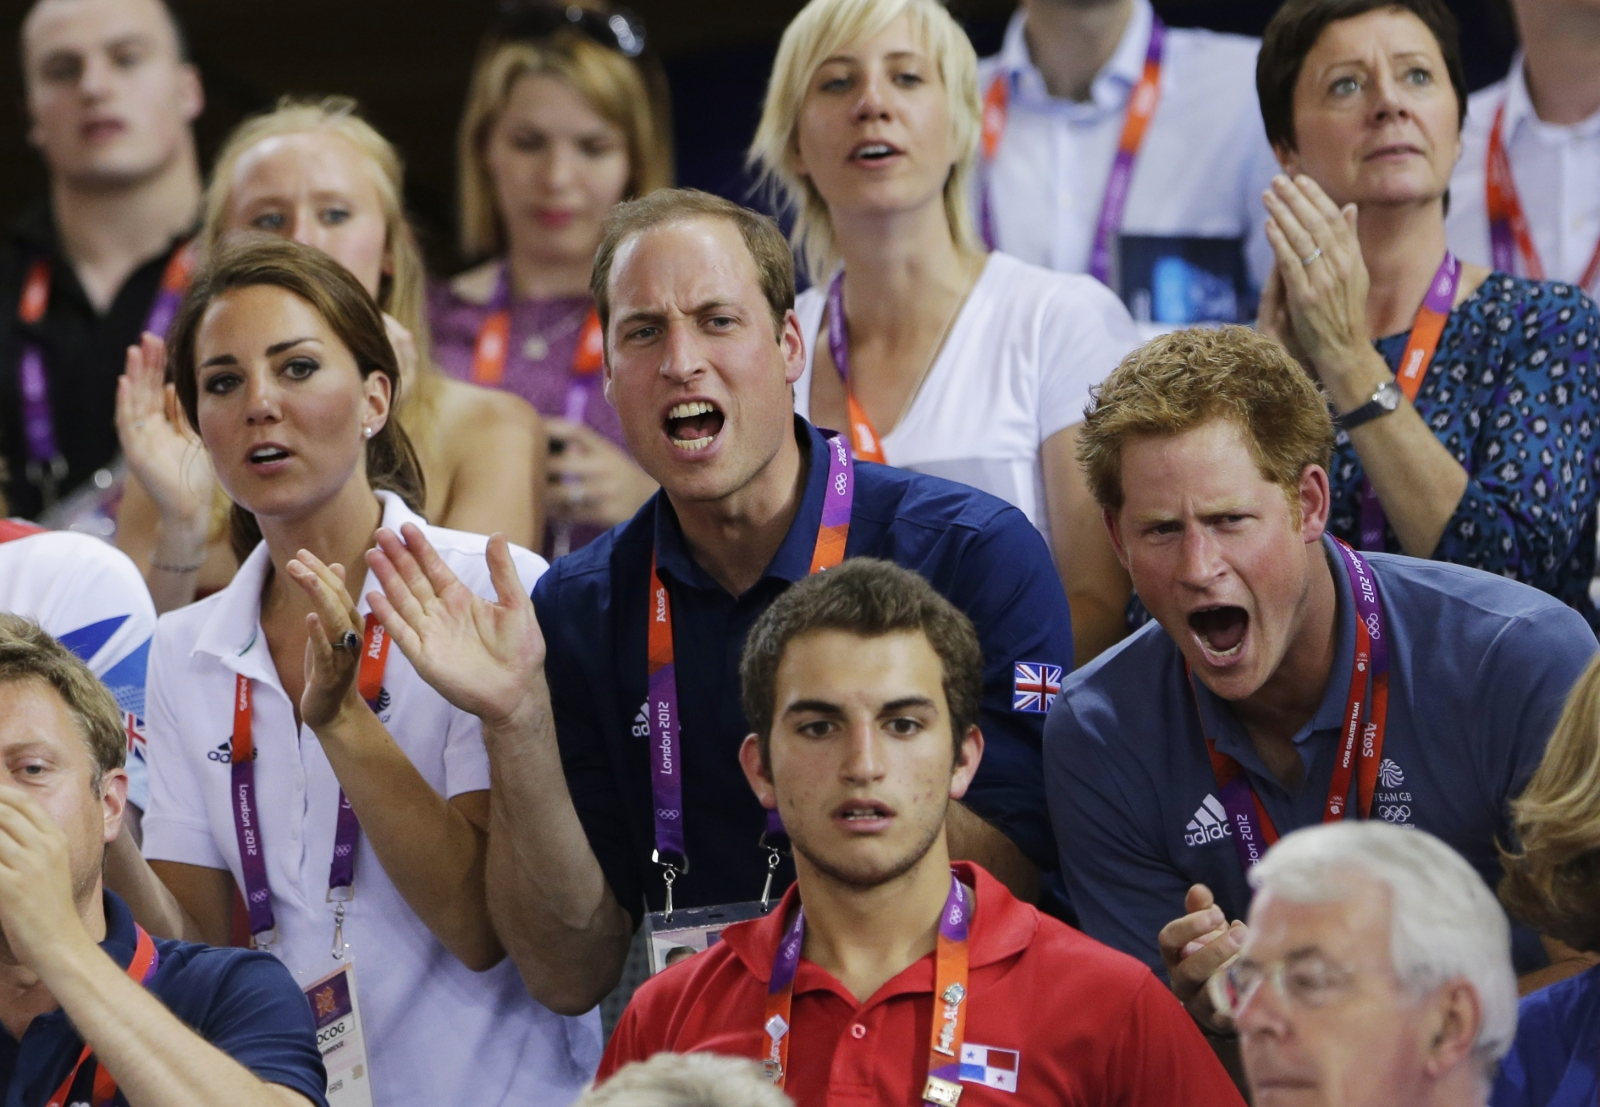 A Royal message of good luck to Team GB at Rio 2016